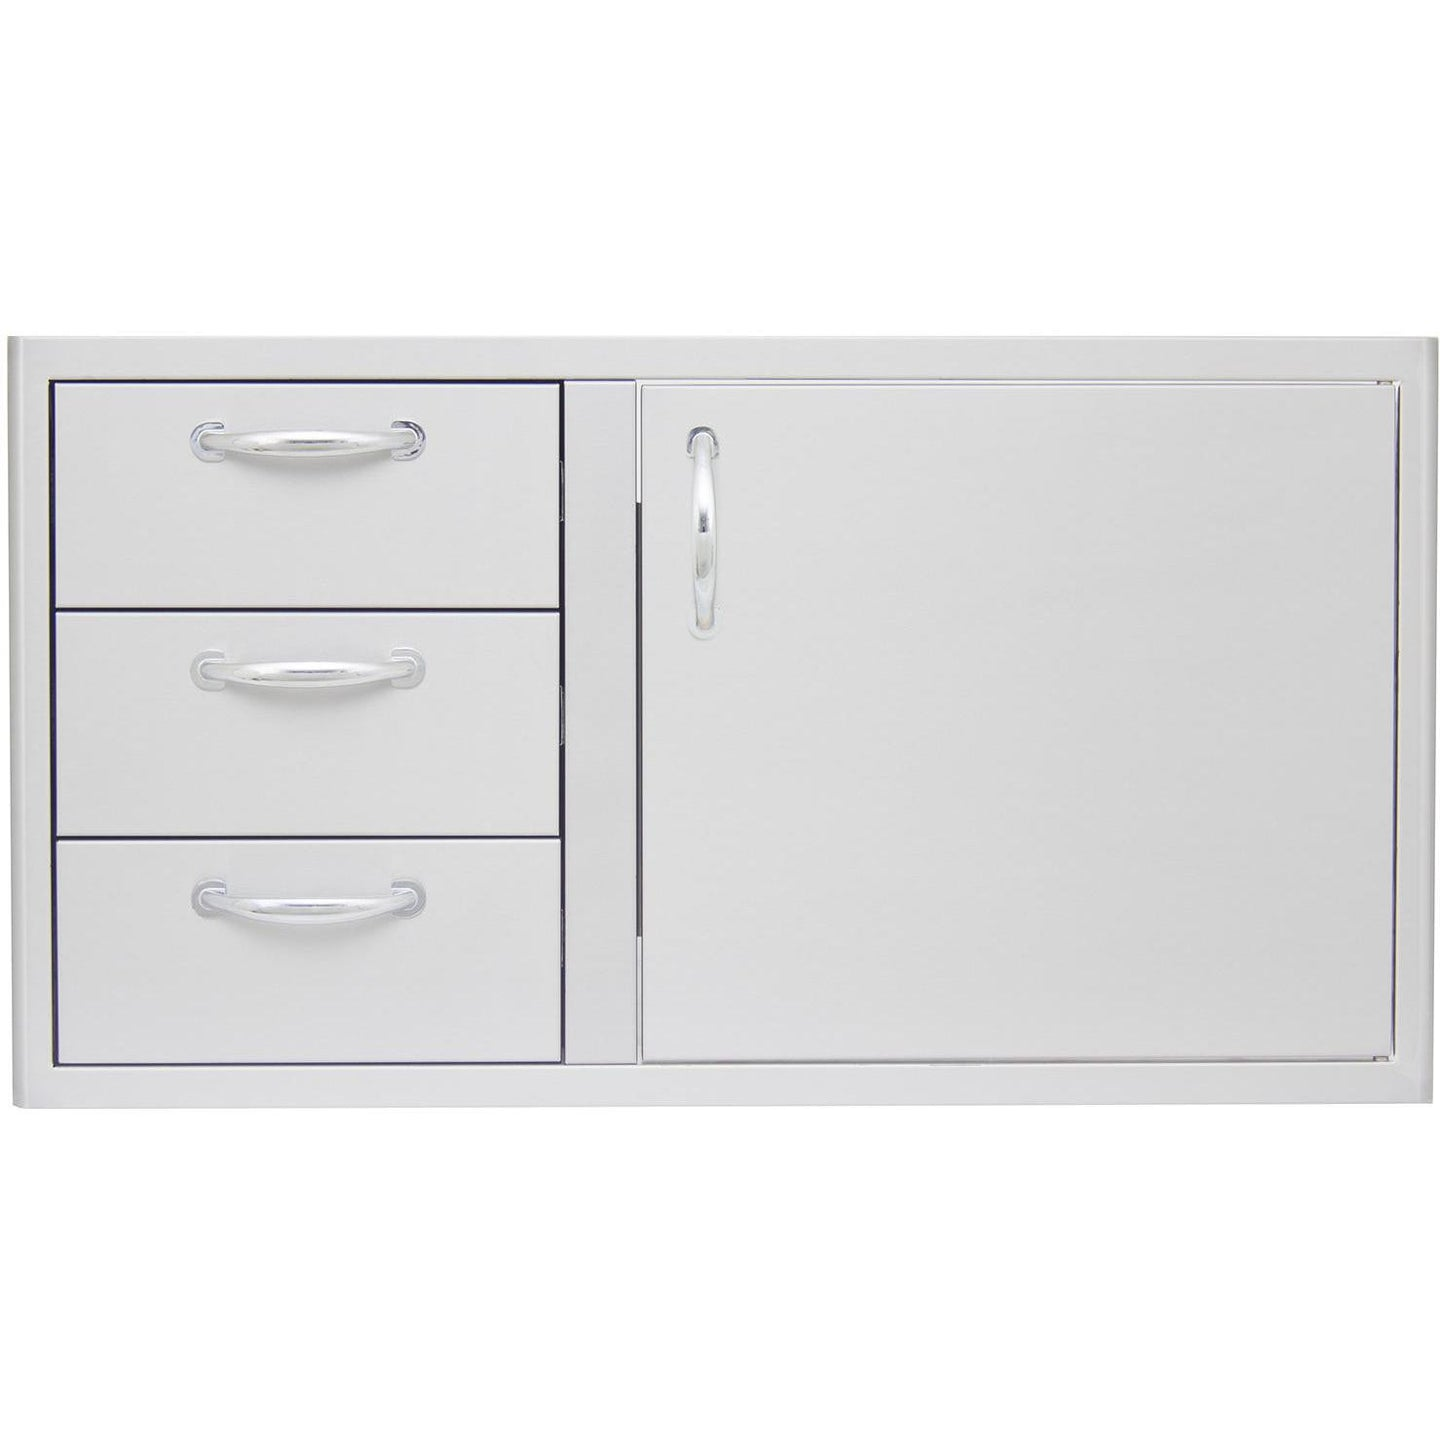 Blaze 39-Inch Access Door & Triple Drawer Combo - BLZ-DDC-39-R